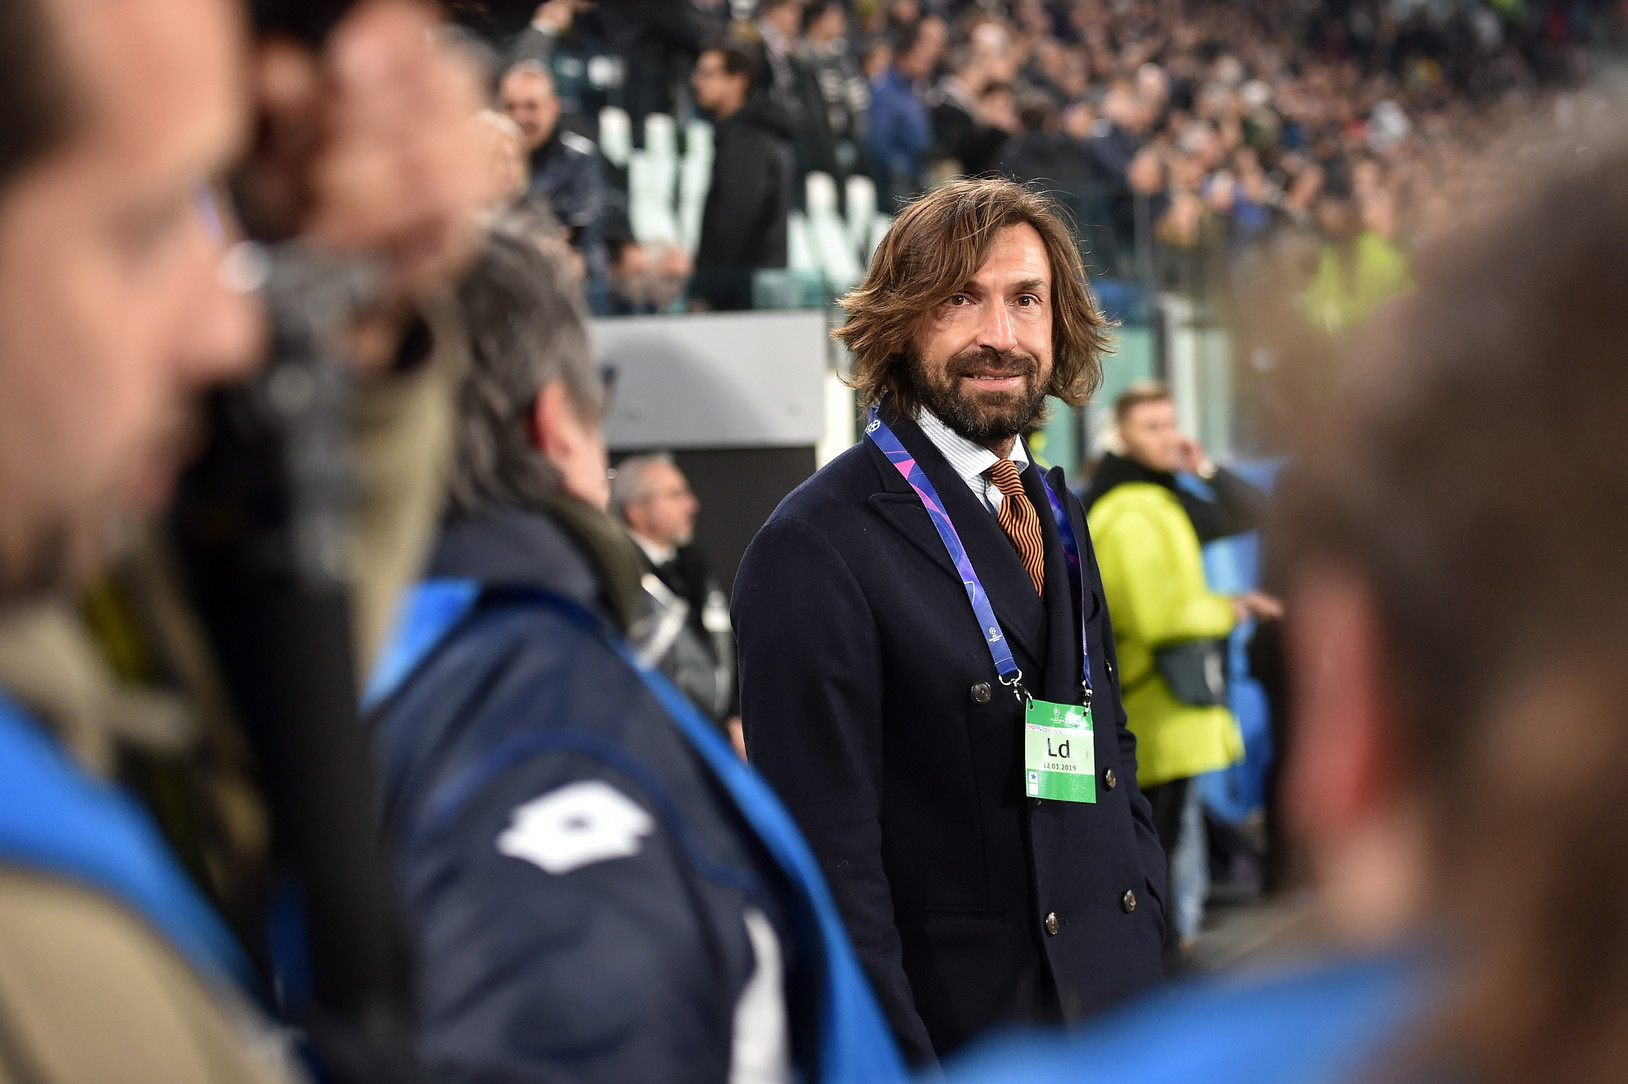 4) Andrea Pirlo: 2,8 milioni di follower